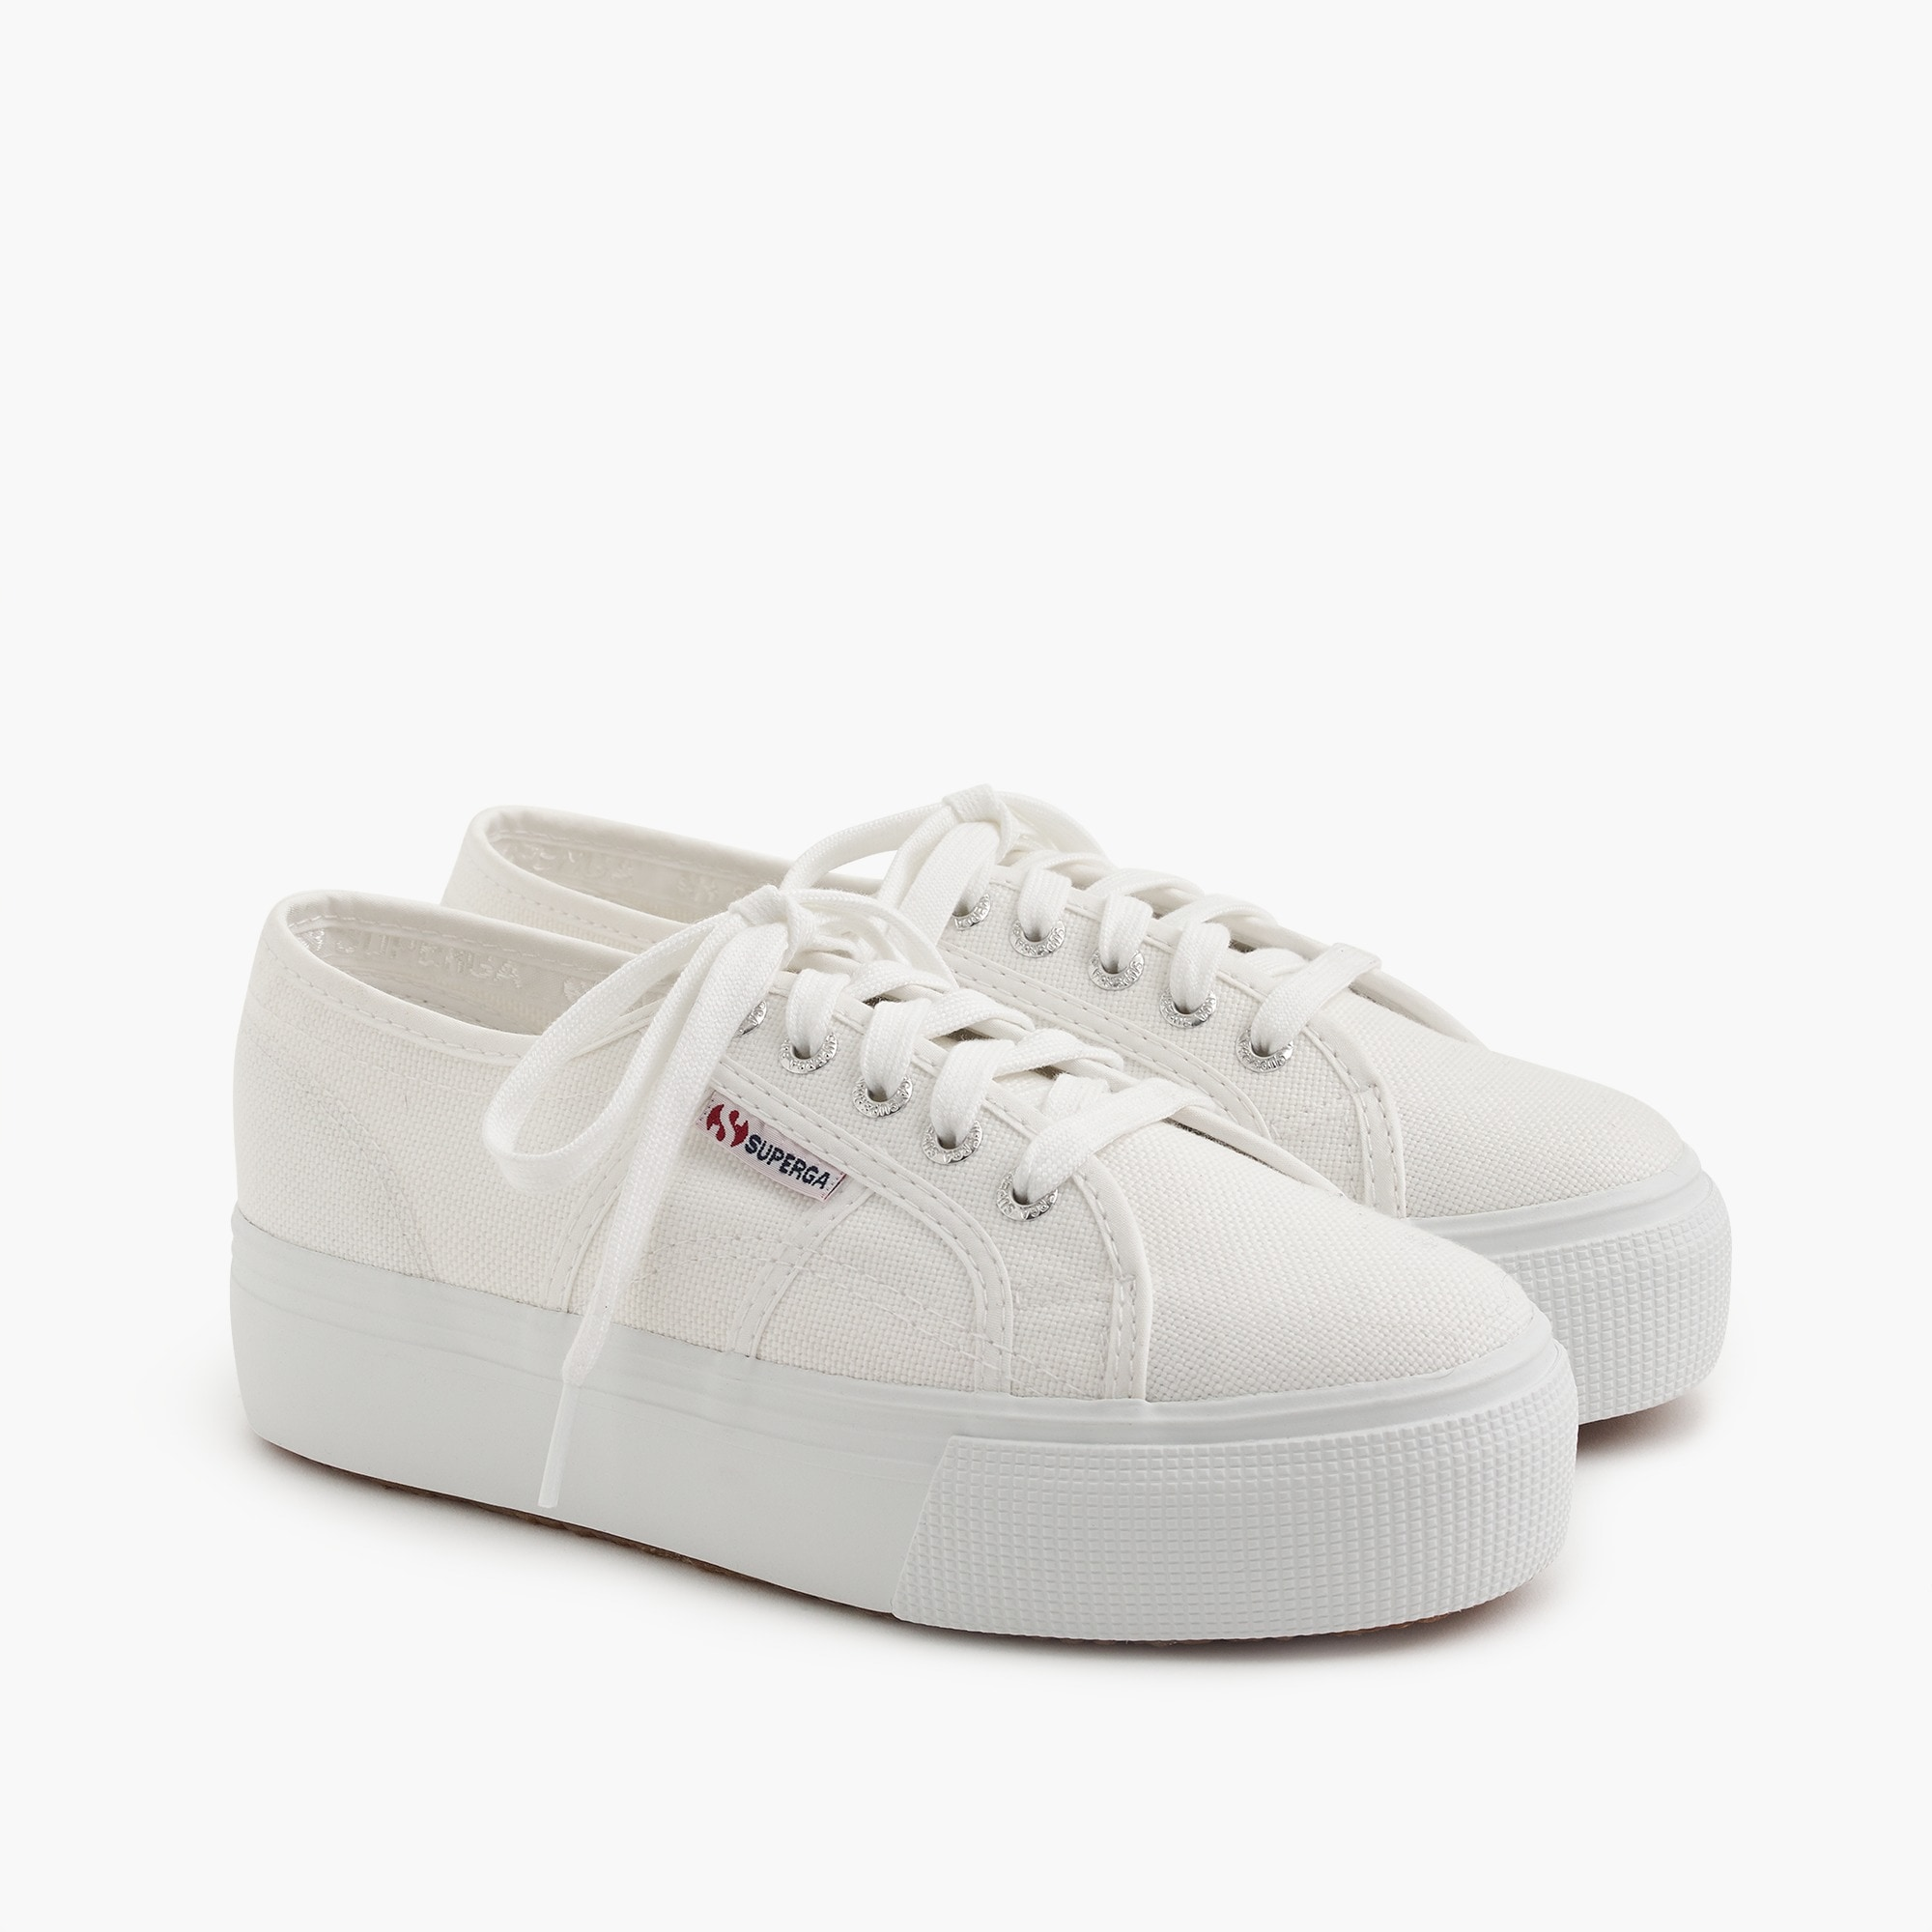 Superga® 2790 platform sneakers women new arrivals c